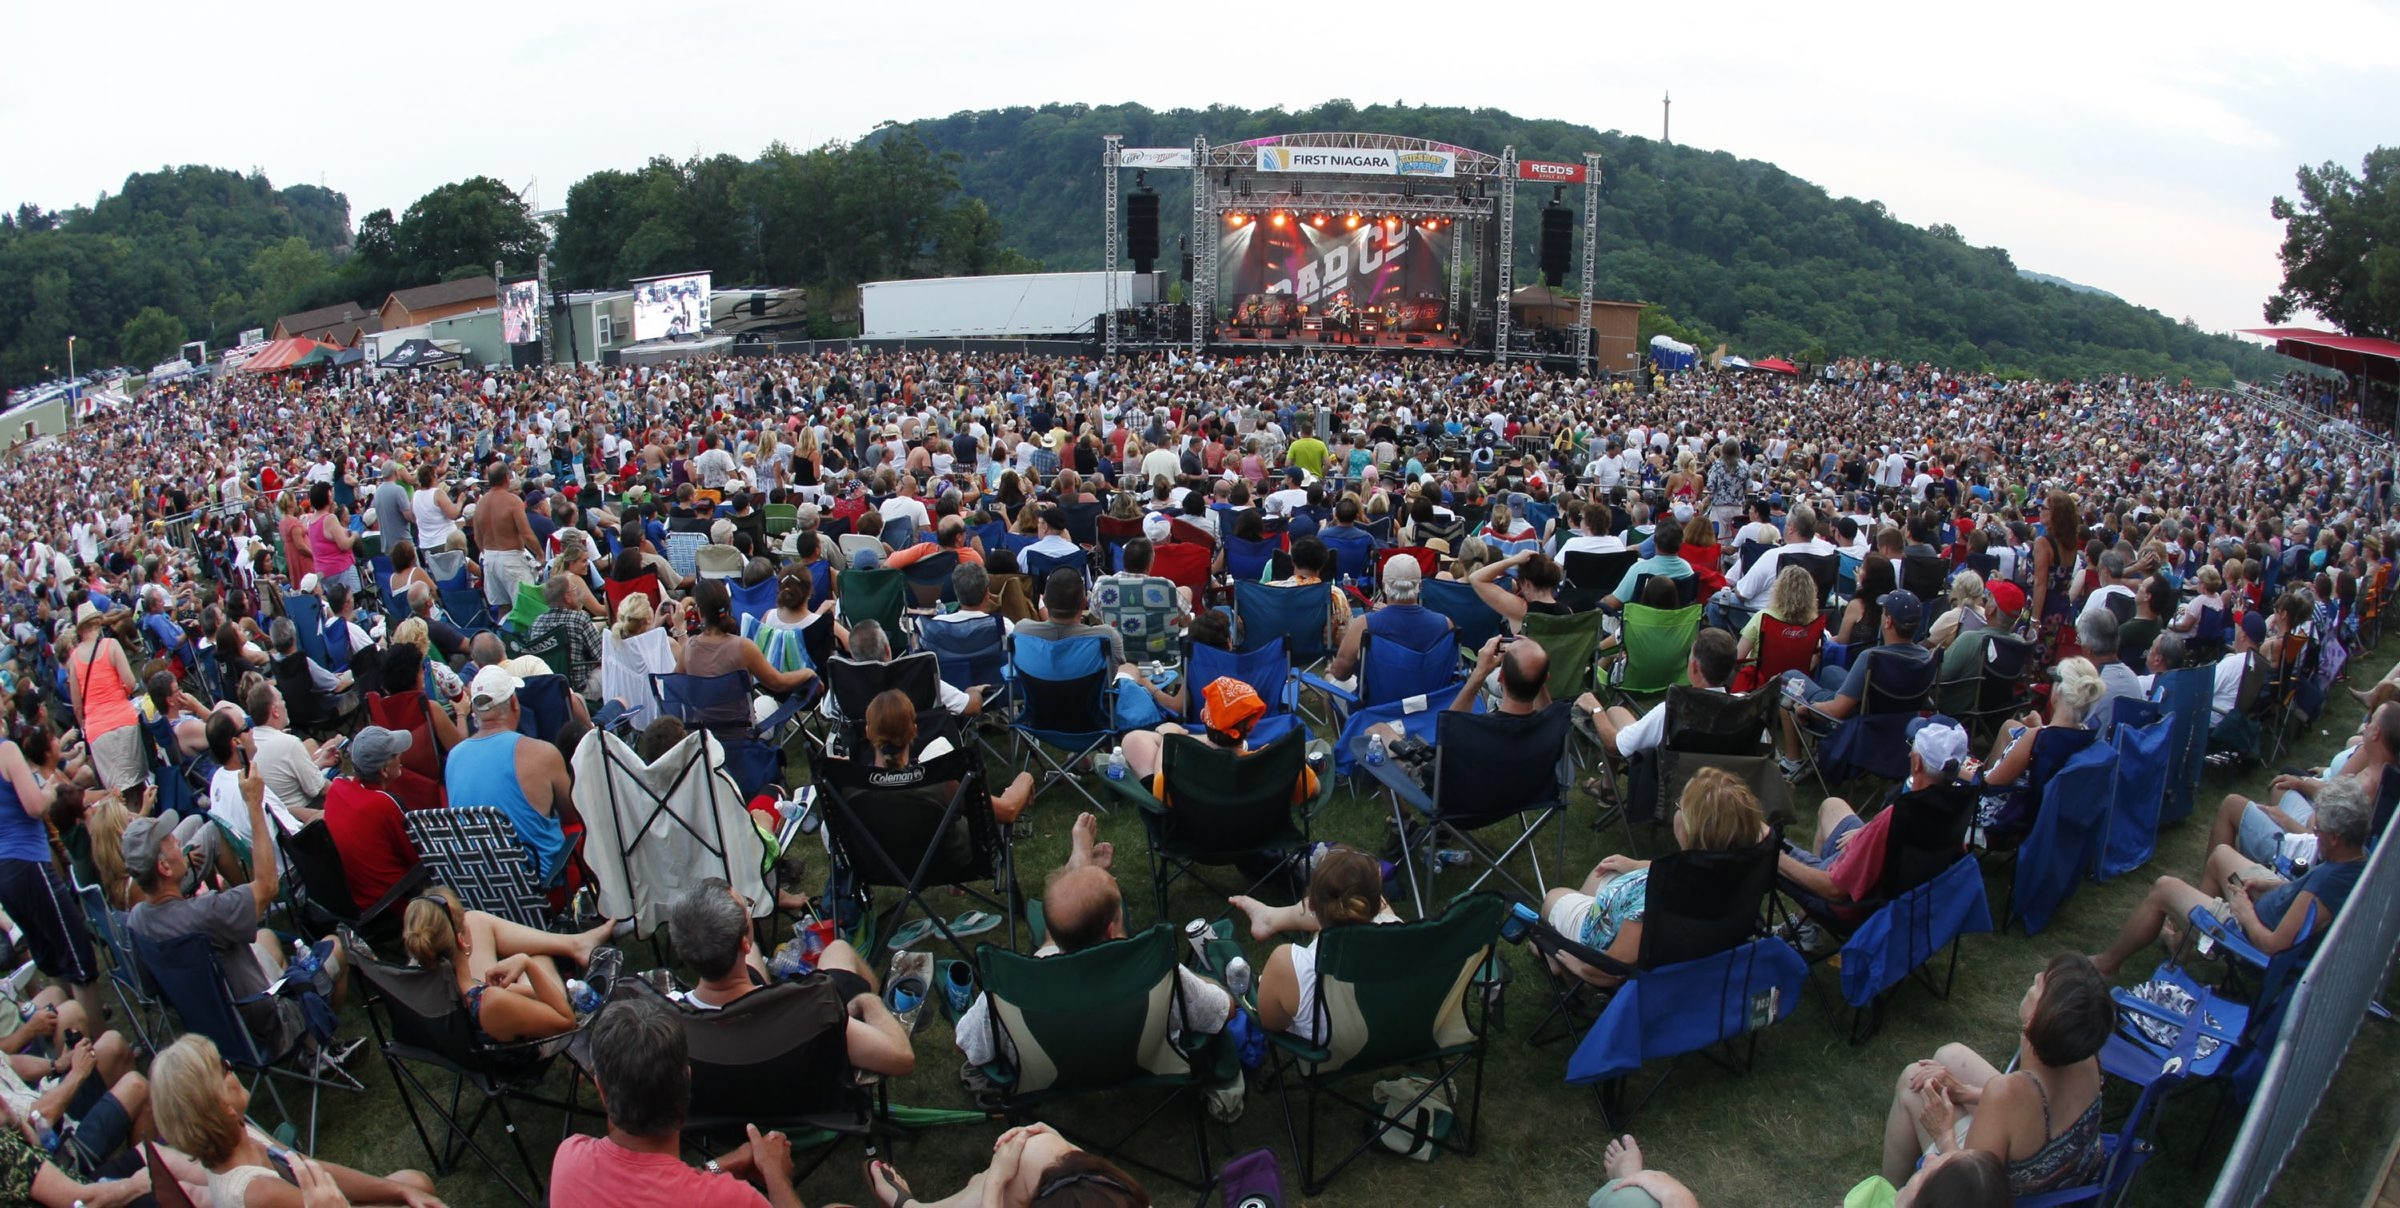 A huge crowd turned out for the Bad Company concert at Artpark last summer. Town Supervisor Dennis Brochey opposes town funding for extra police services required during the concerts.